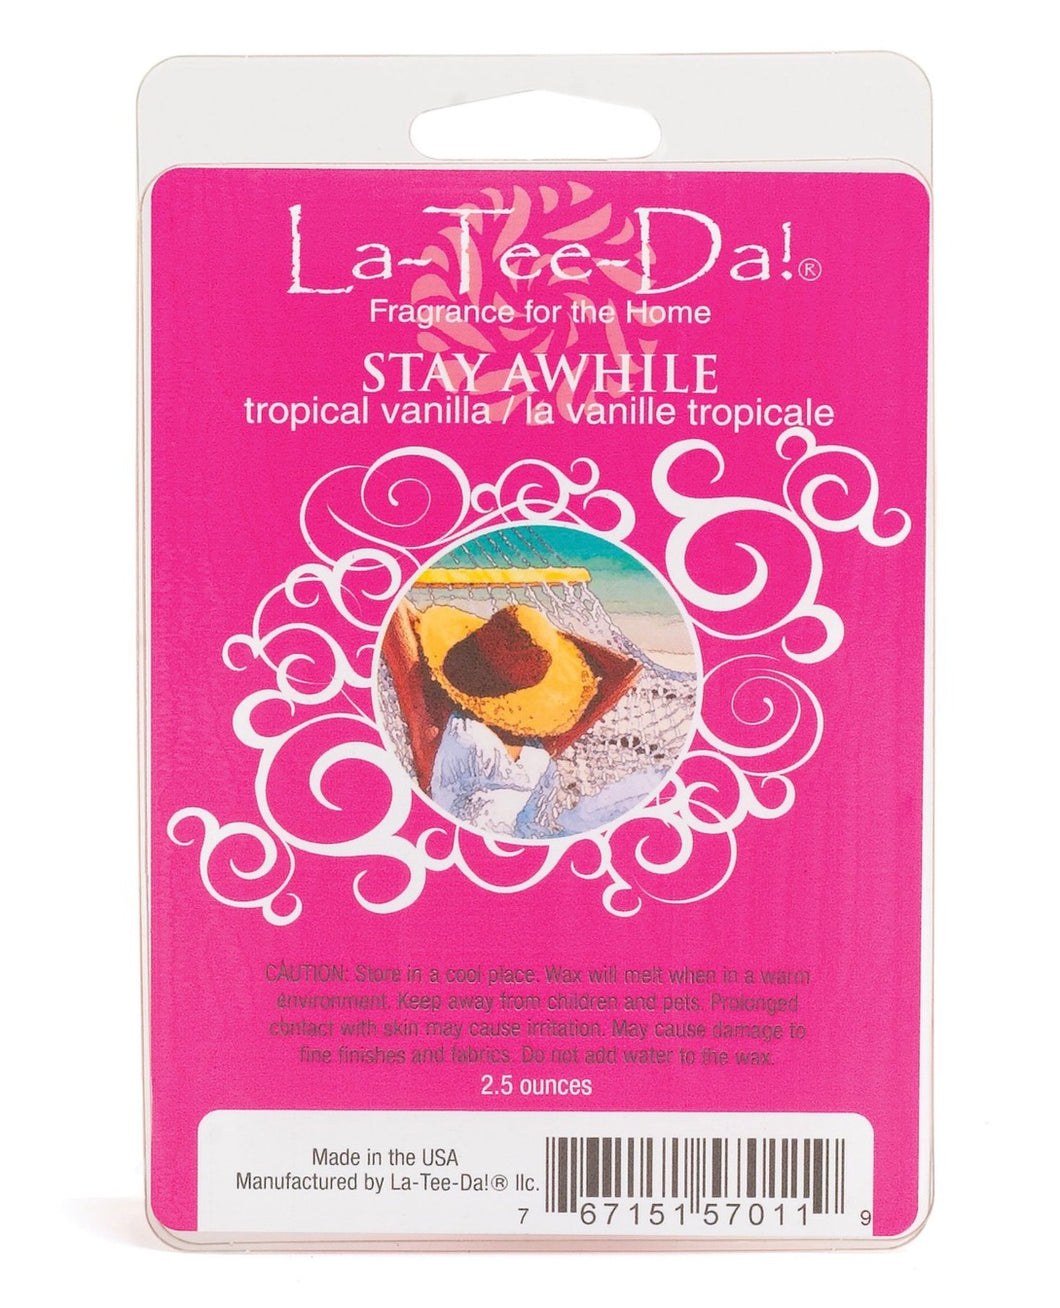 LA-TEE-DA! - WAX MELT - STAY AWHILE - TROPICAL VANILLA - 2.5 OZ